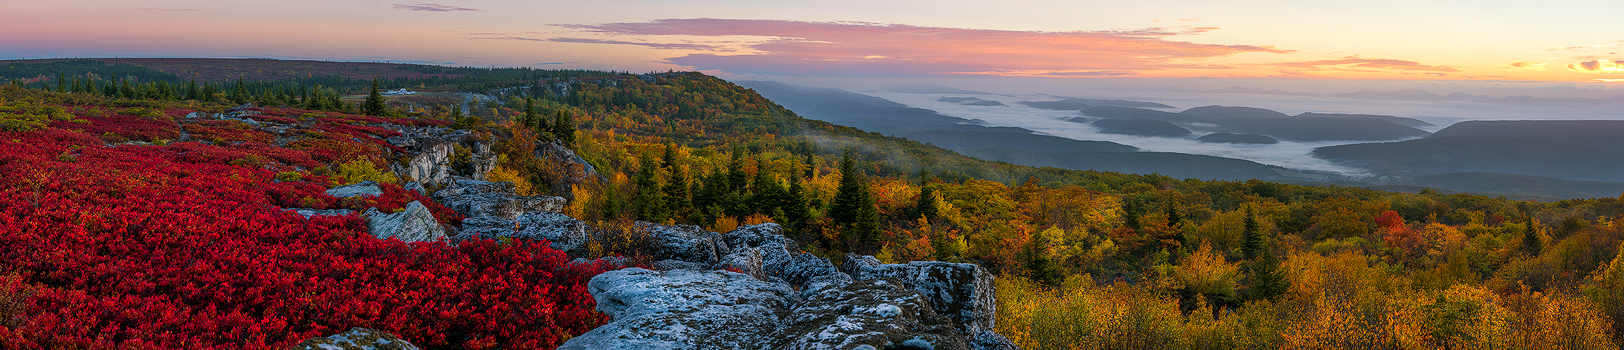 West Virginia, Bear Rocks, Dolly Sods Wilderness, Canaan Valley, Panoramic, Dolly Sods, Allegheny Mountains, Bear Rocks Preserve, Monongahela National Forest, Foggy Morning, Fog, Sun, photo